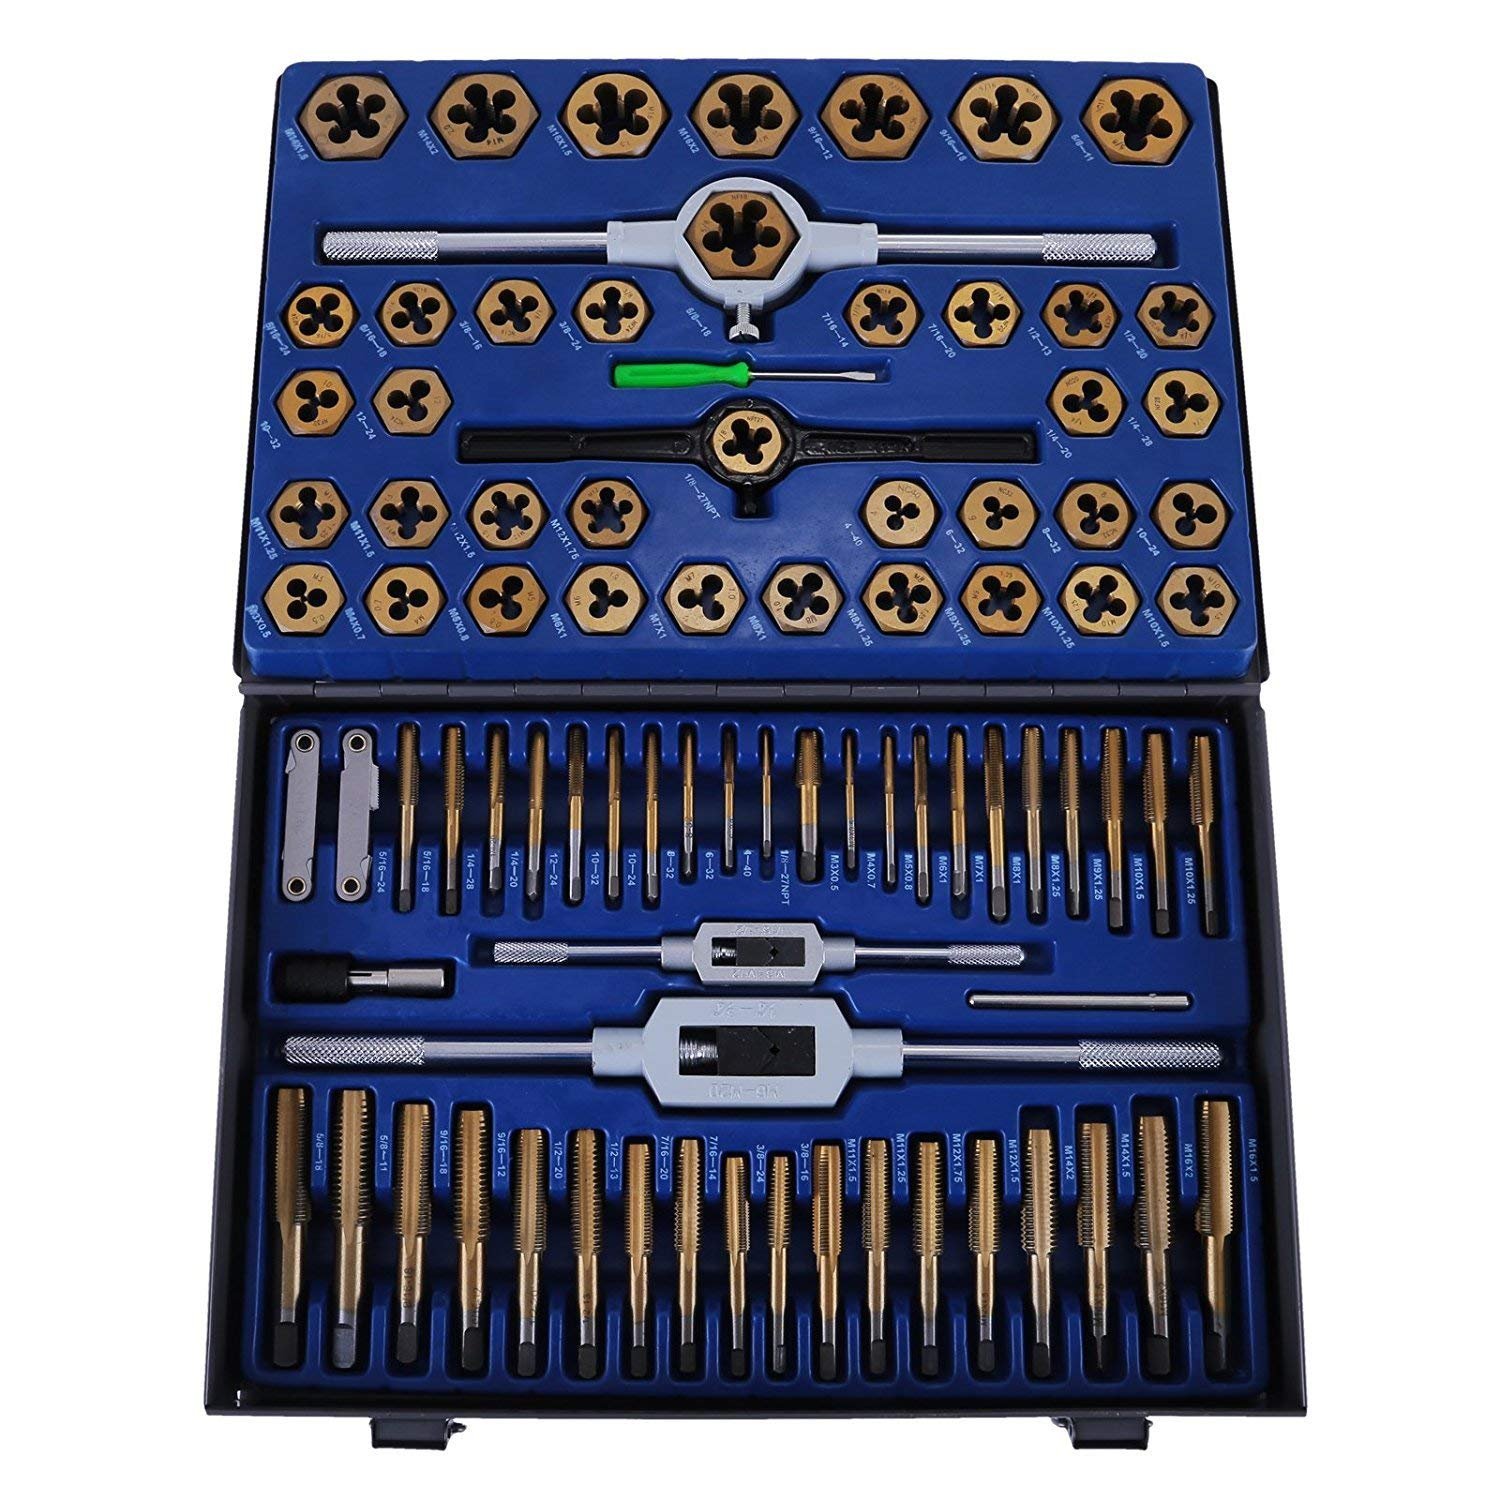 BestEquip 86PC Tap and Die Set Combination Metric Tap and Die Sae Tap and Die Set Tungsten Steel Titanium SAE and Metric Tool